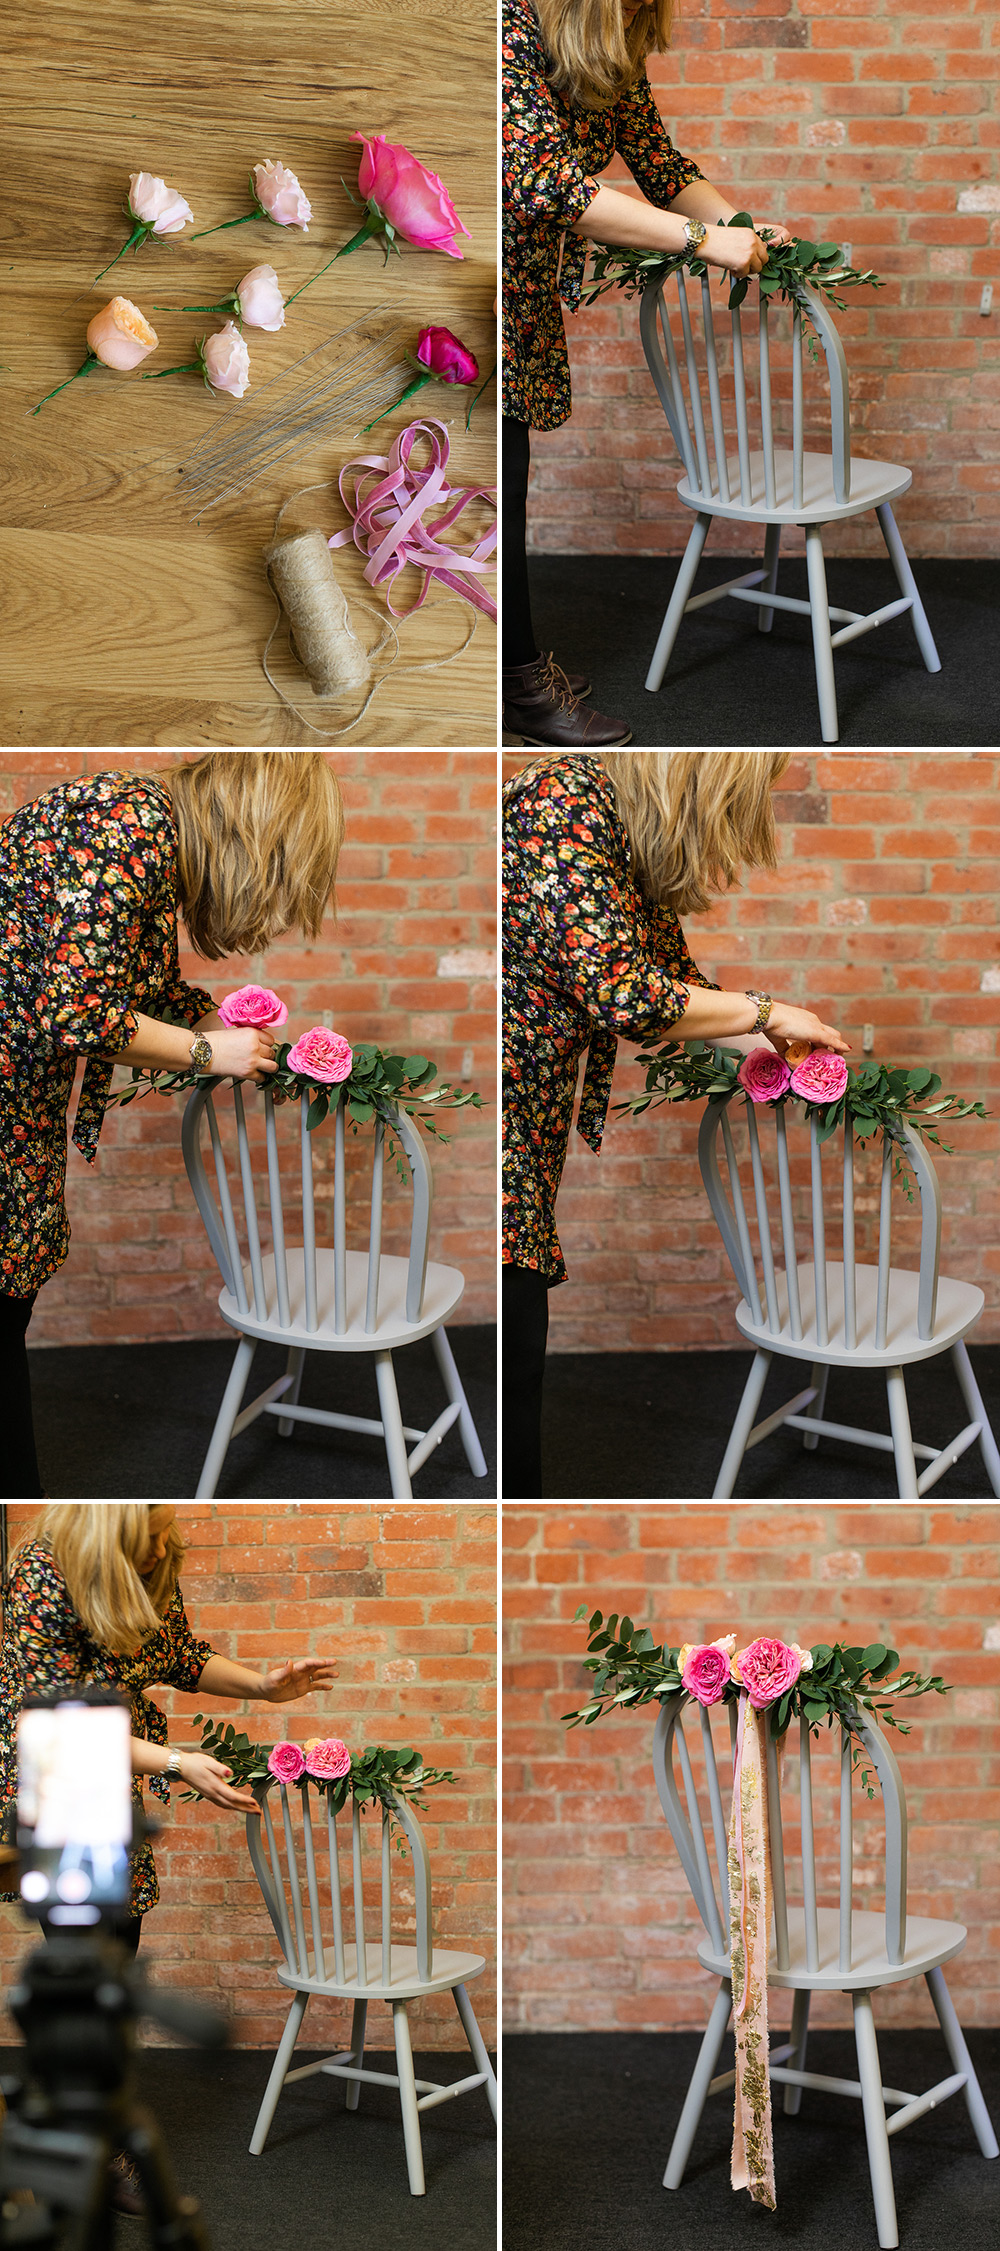 How to Make Wedding Chair Decorations